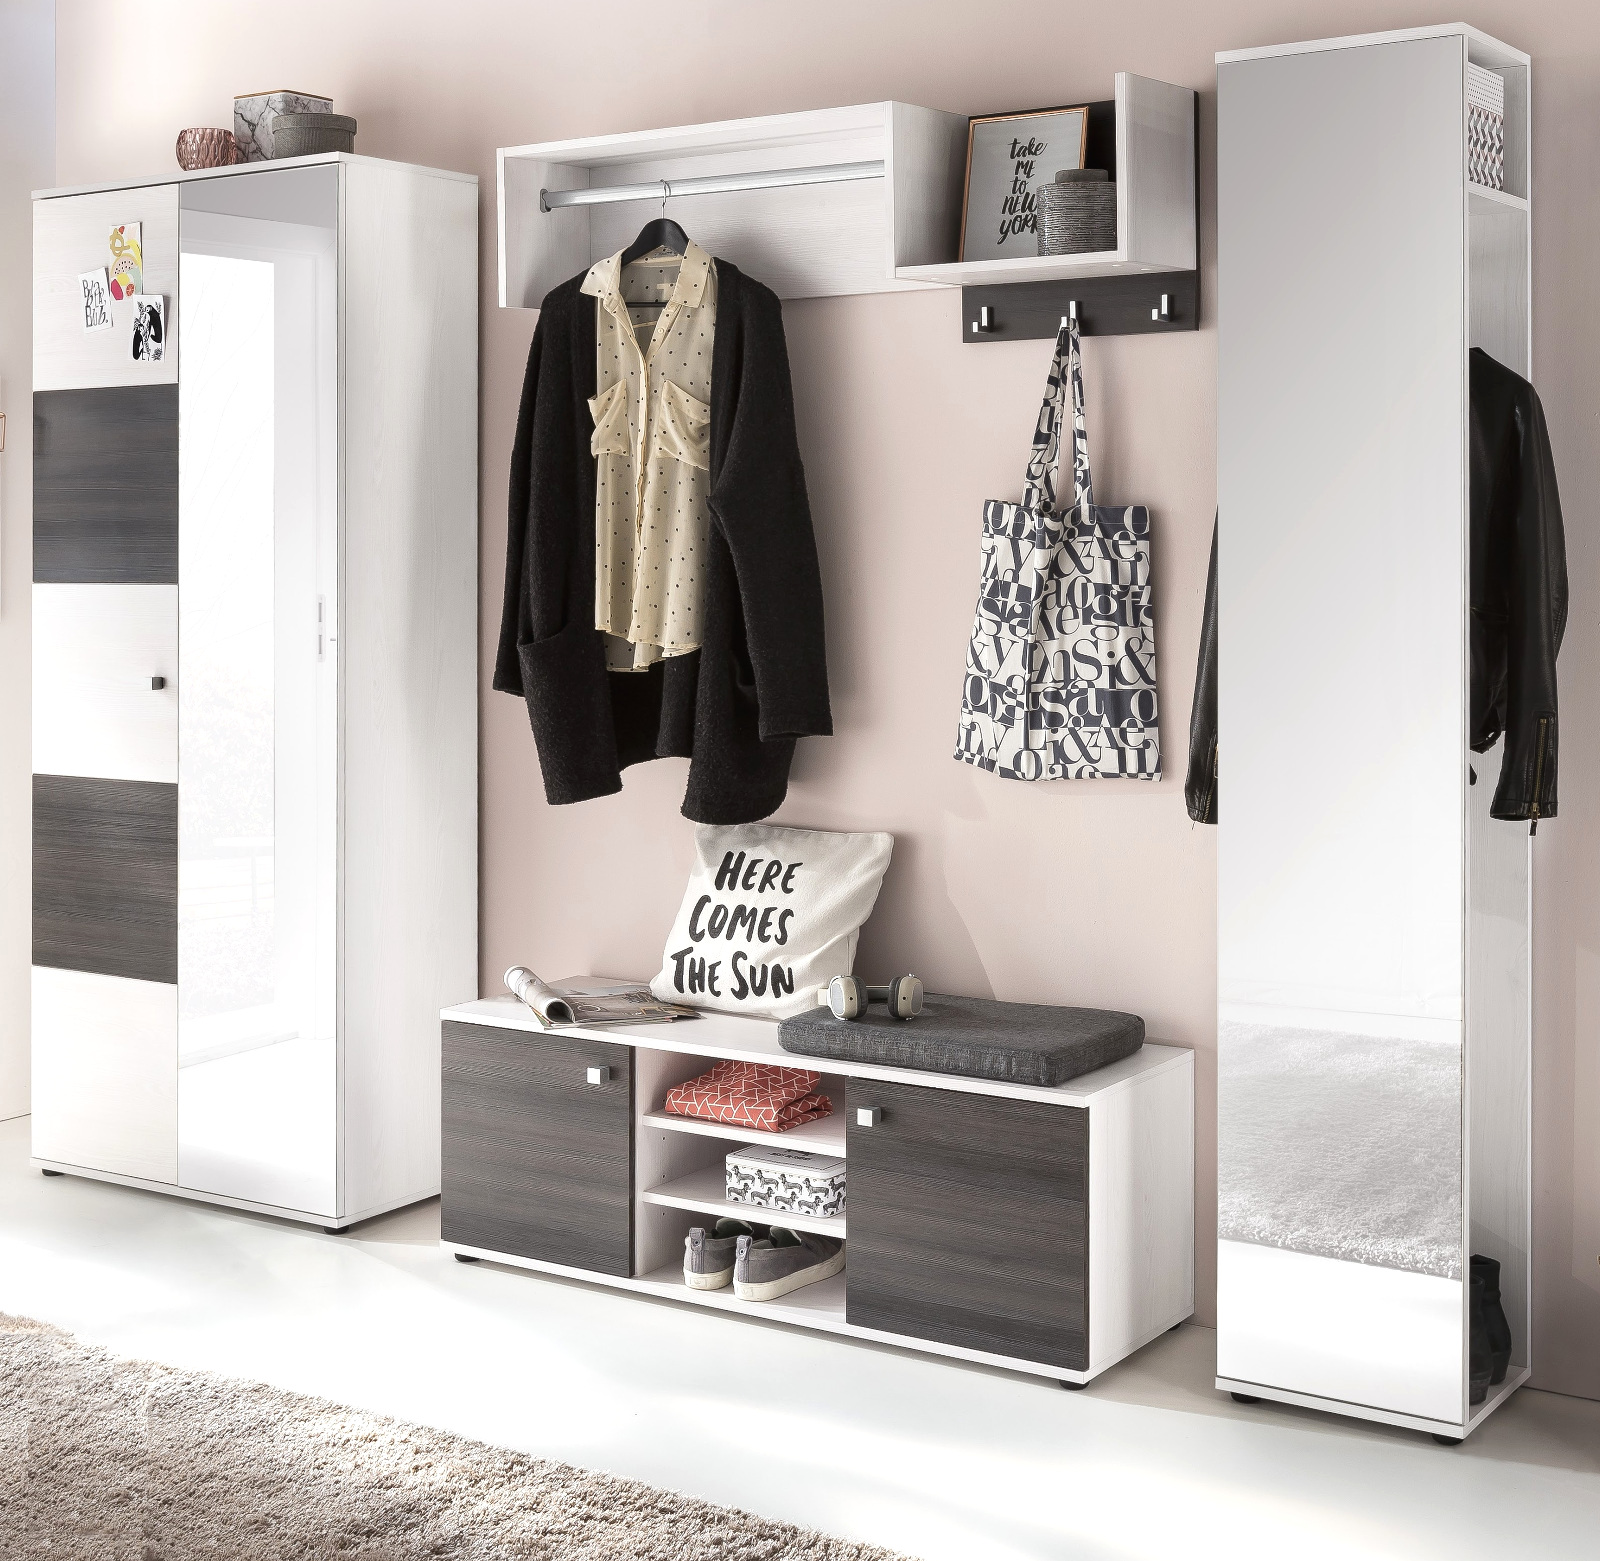 flur garderobe wandgarderobe sibu l rche wei. Black Bedroom Furniture Sets. Home Design Ideas